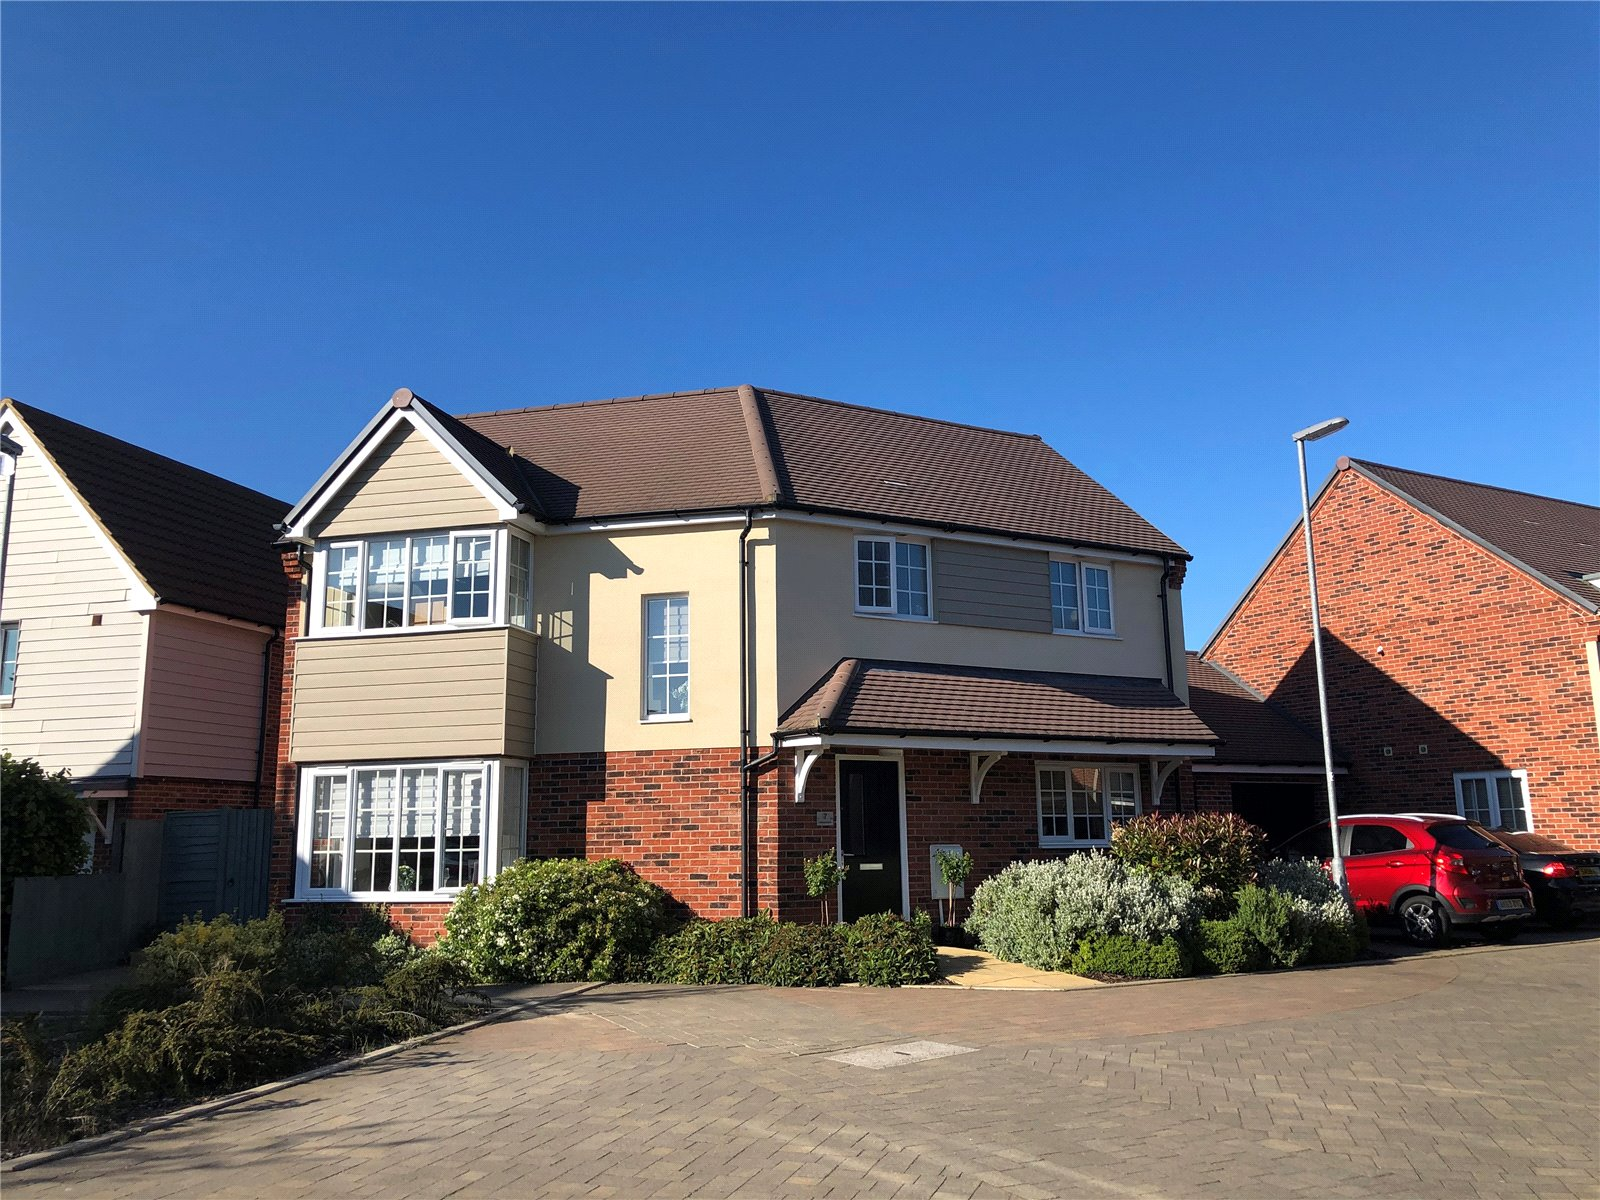 3 bed house for sale in Harvest Drive, St Neots - Property Image 1